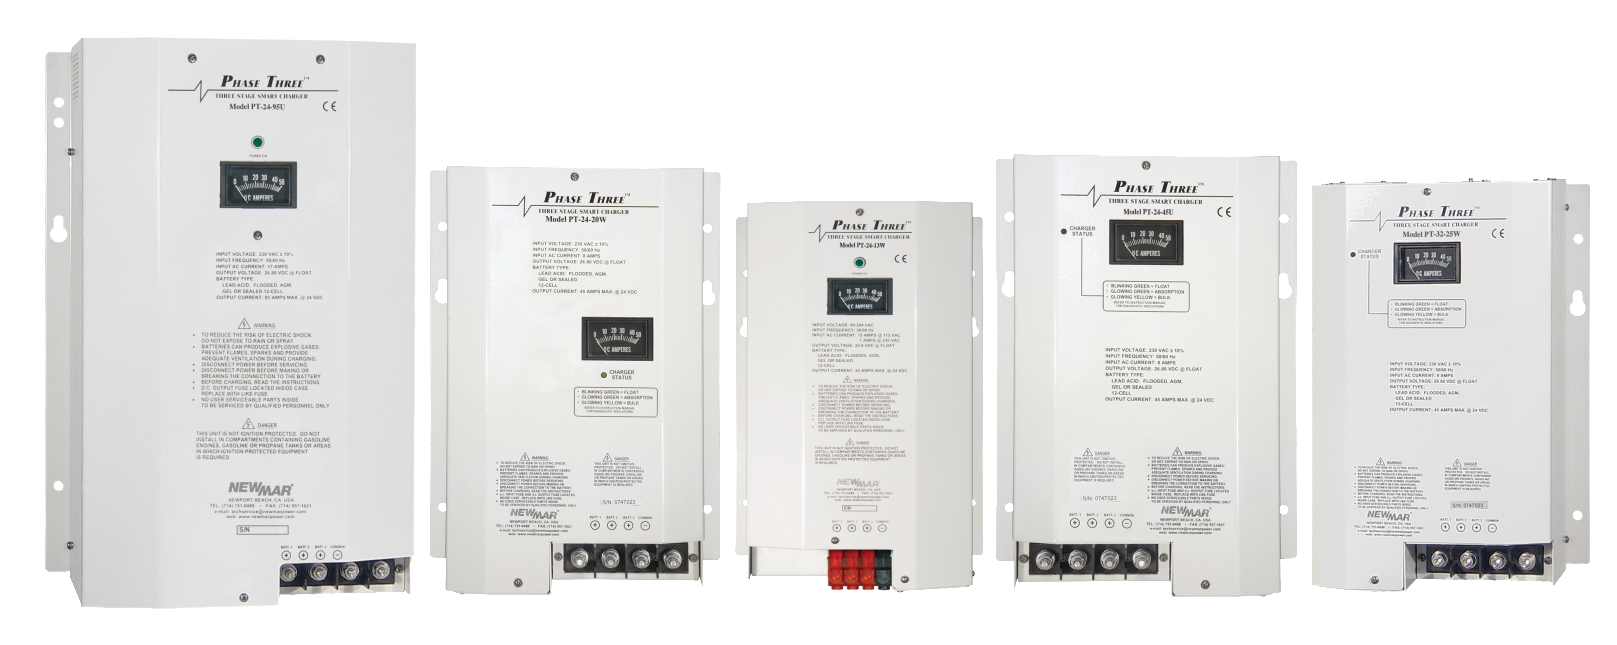 Phase Three Battery Chargers for mobile applications, 12V DC, 24V DC and 32V DC, 7 - 95 amp power rating by Newmar Powering the Network